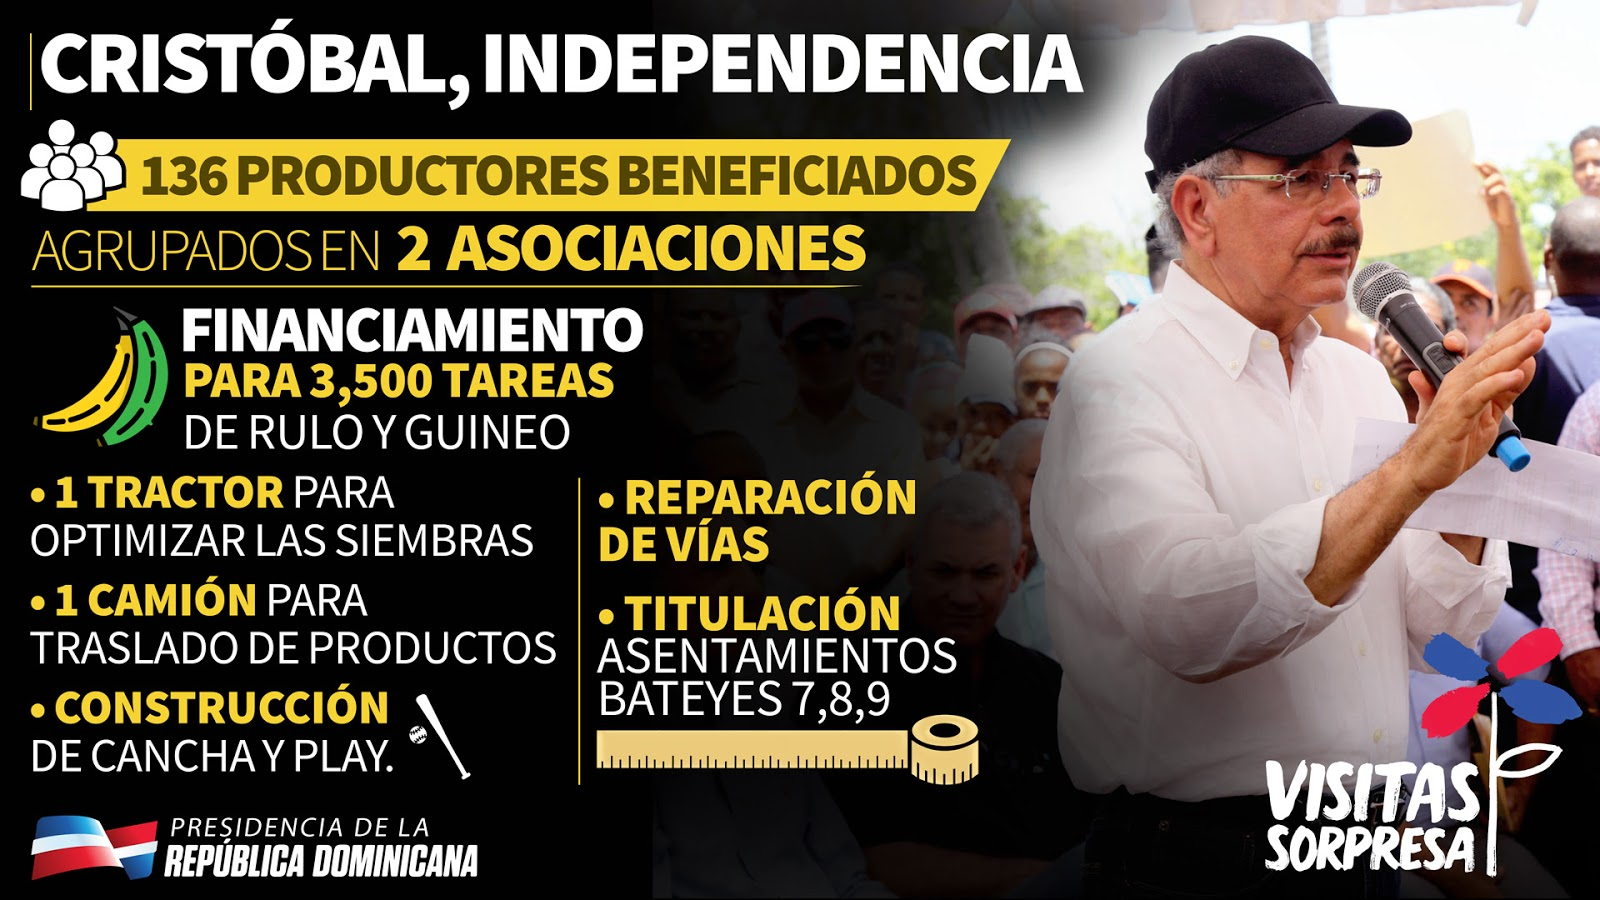 Cristóbal, Independencia. 136 productores beneficiados. Infografía